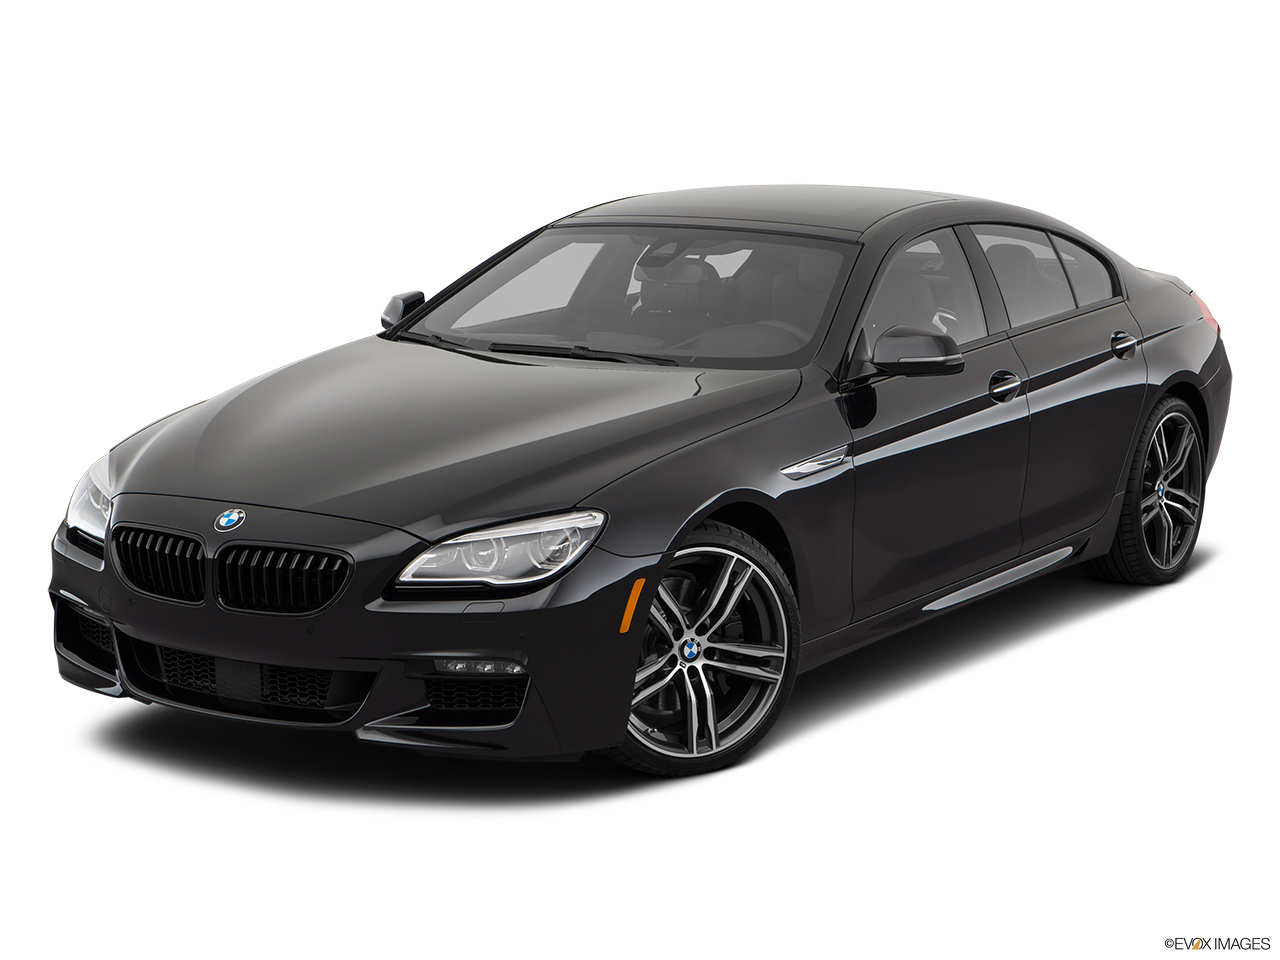 Bmw 6 Series Gran Coupe 2018 640i In Uae New Car Prices